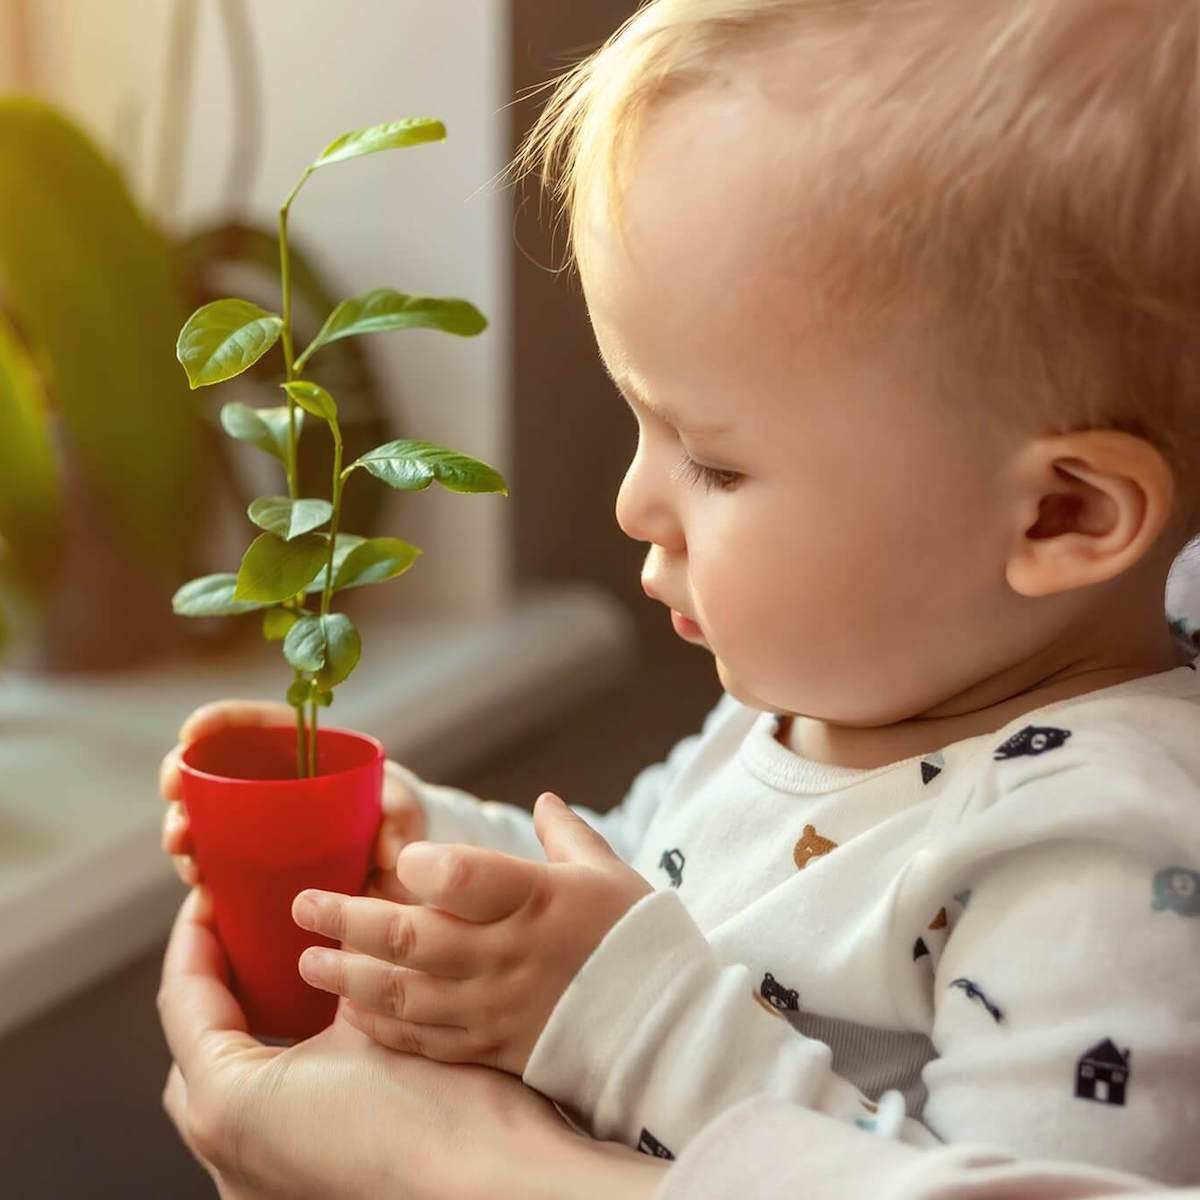 An infant wearing a onesie and looking at a small potted plant next to a window